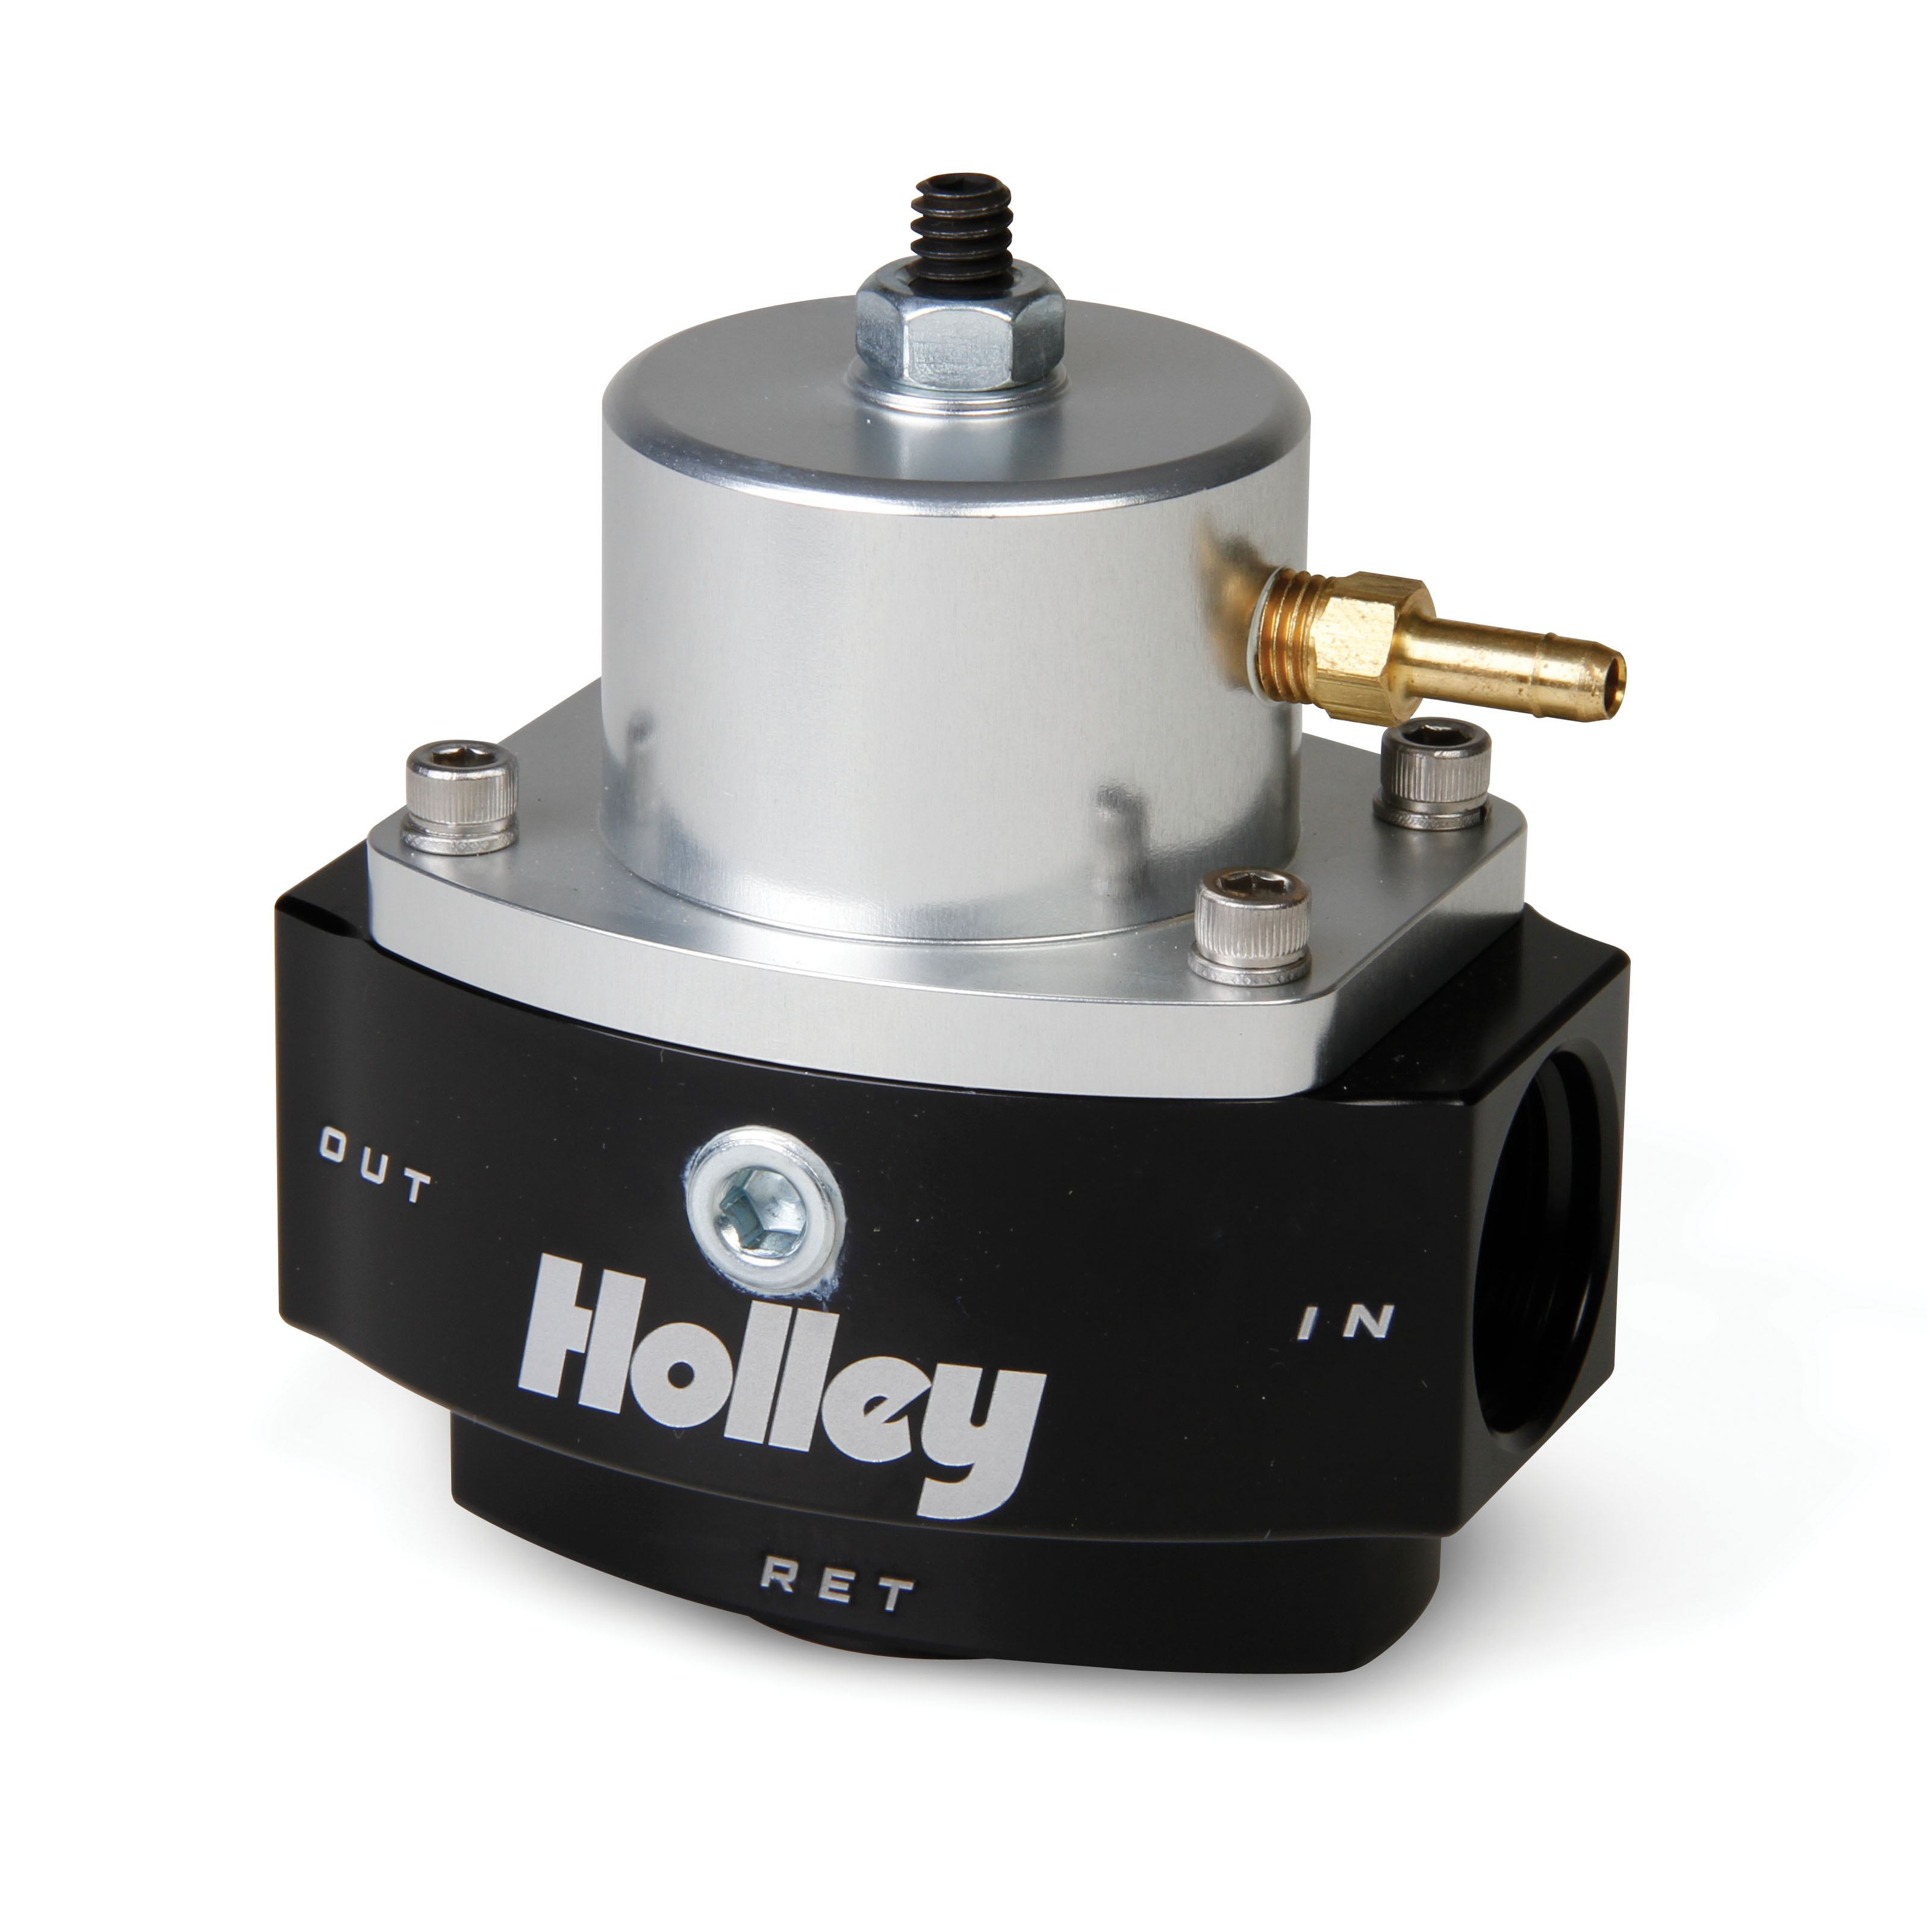 Holley 2 Port Ultra Dominator Fuel Pressure Regulator - Adjustable 4-9 PSI